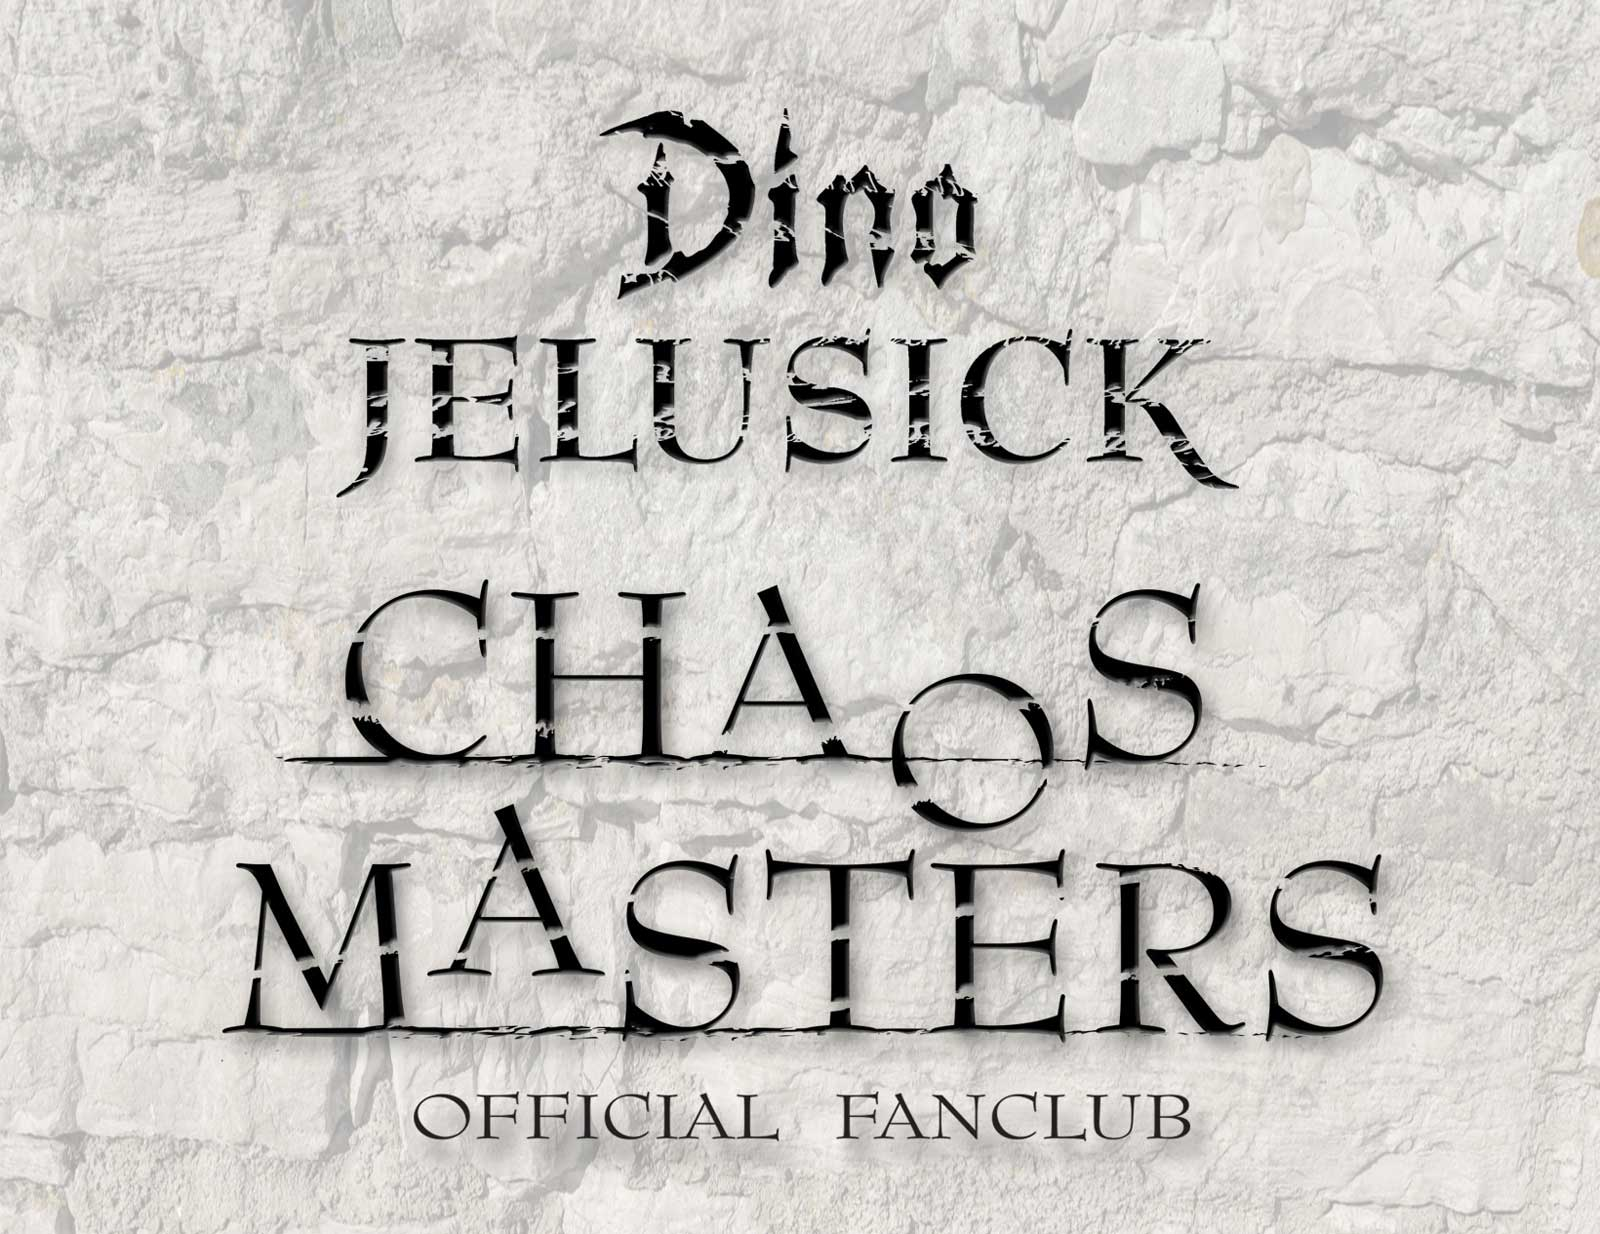 Official Fanclub is alive!